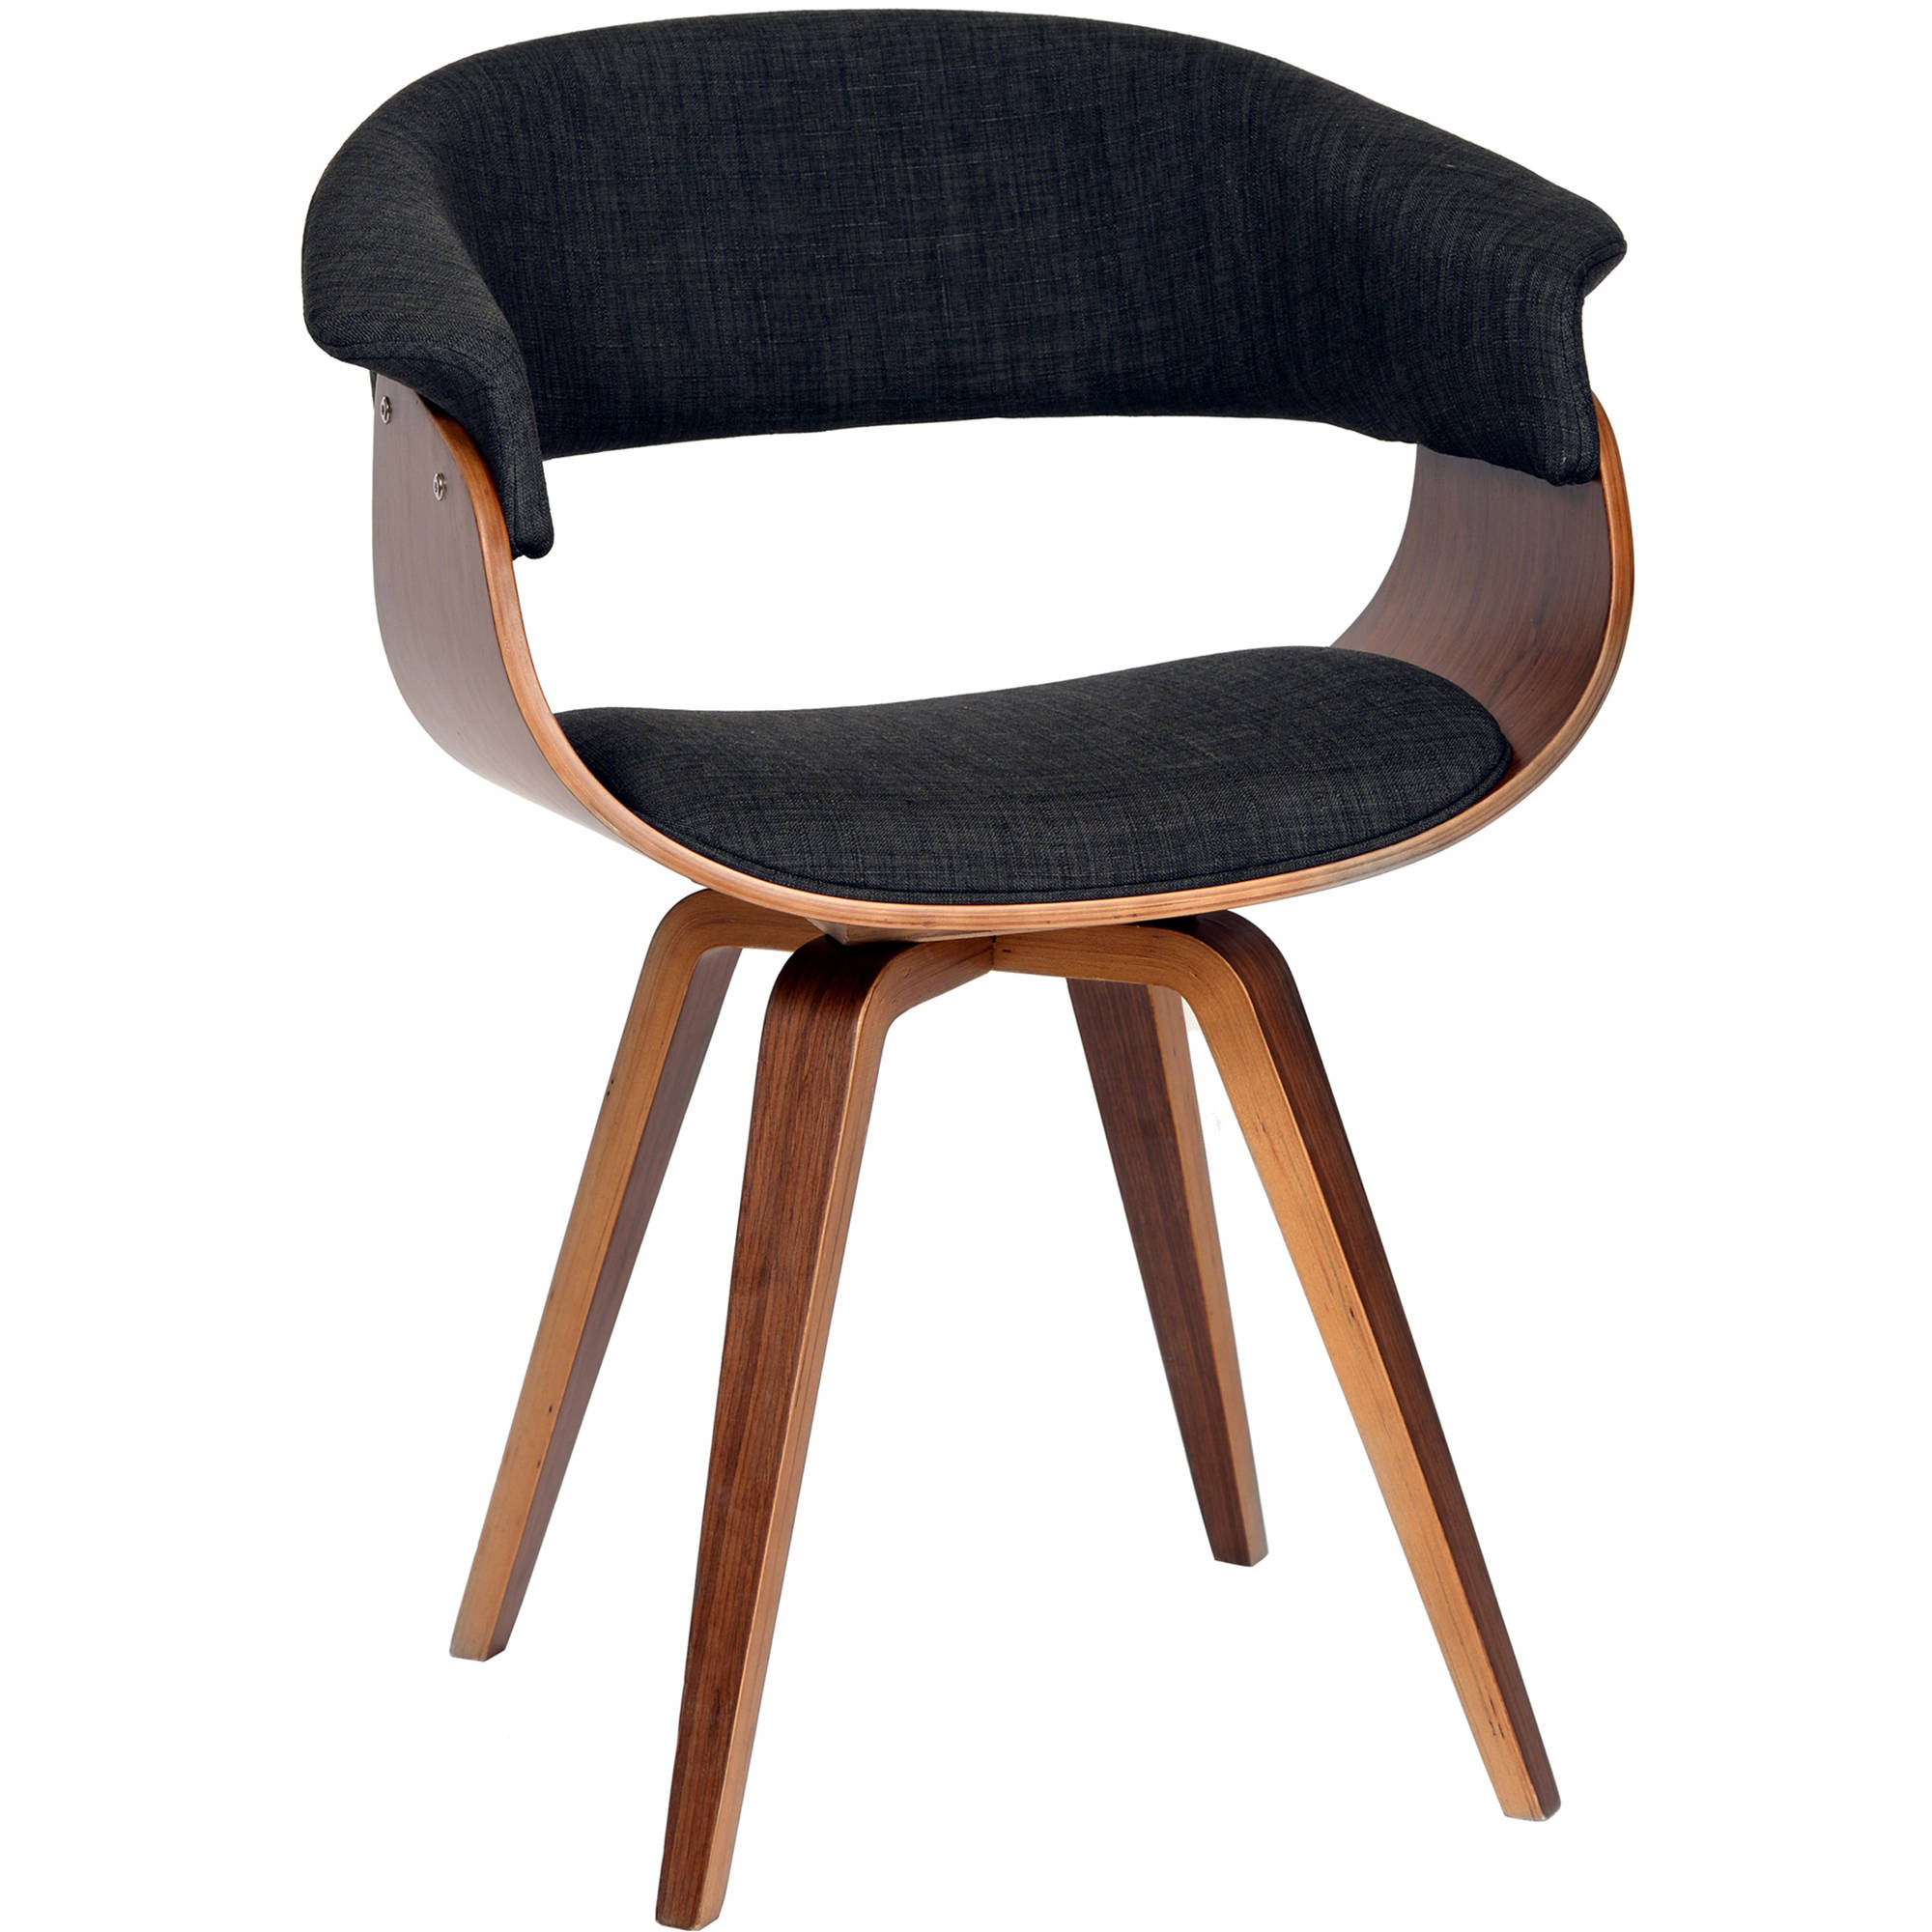 ARMEN LIVING Summer Modern Chair, Charcoal Fabric and Walnut Wood